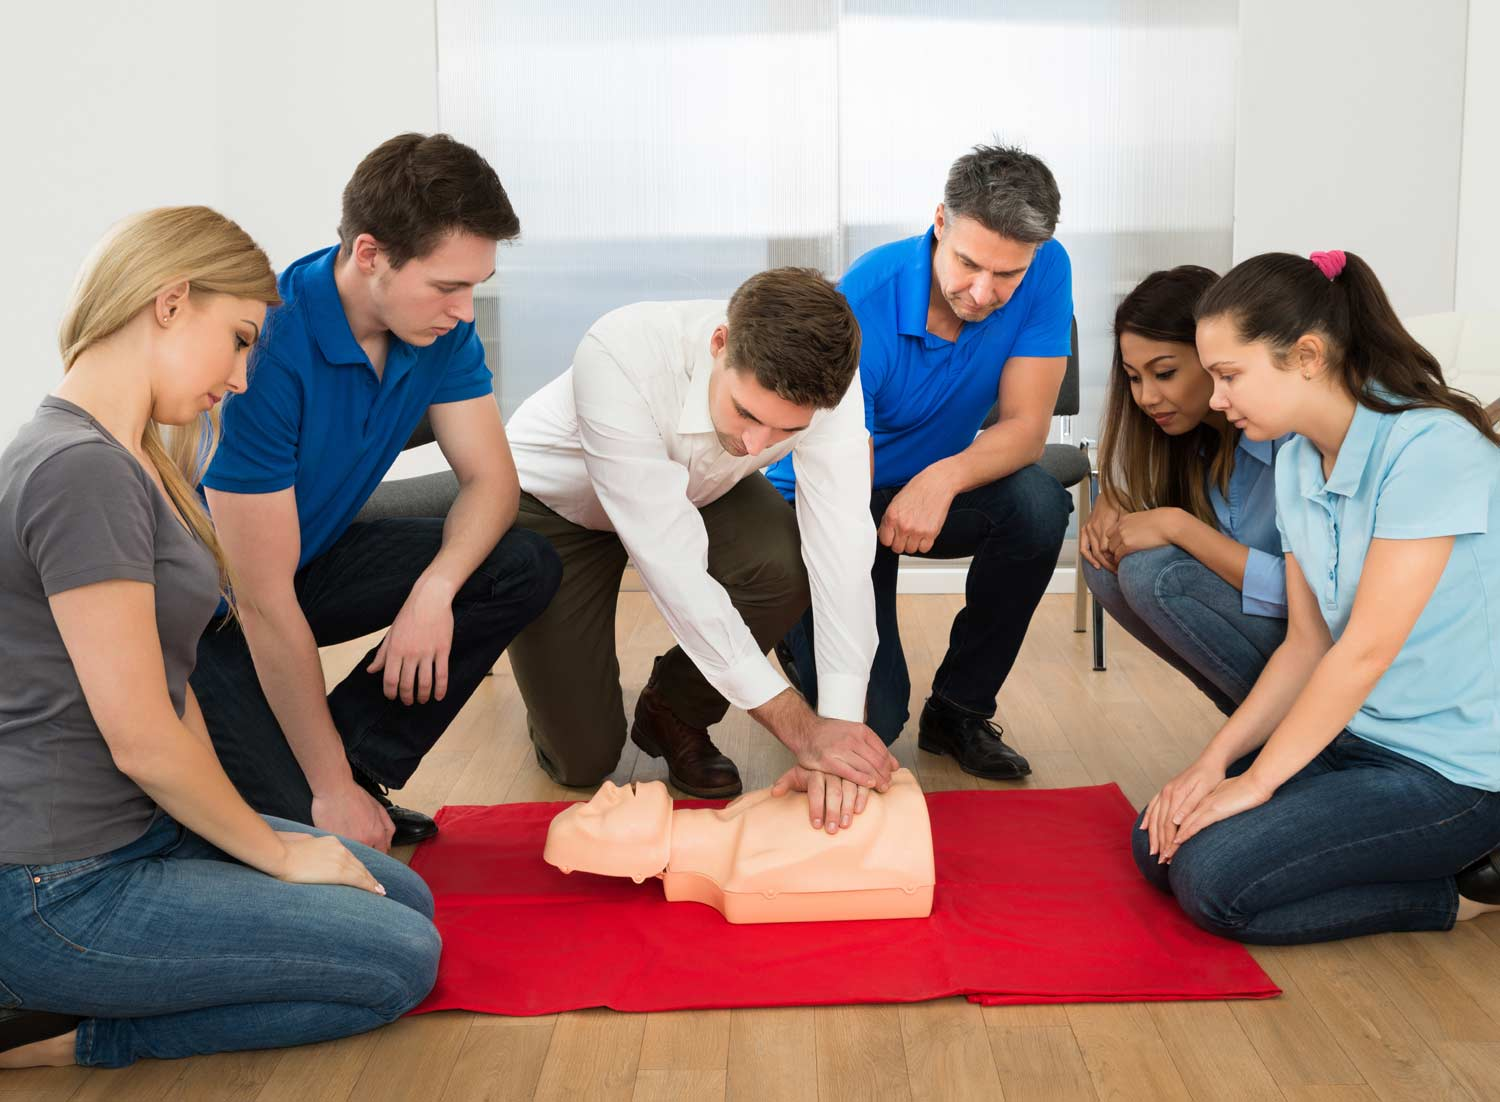 Providing courses in First Aid, Health & Safety and Care